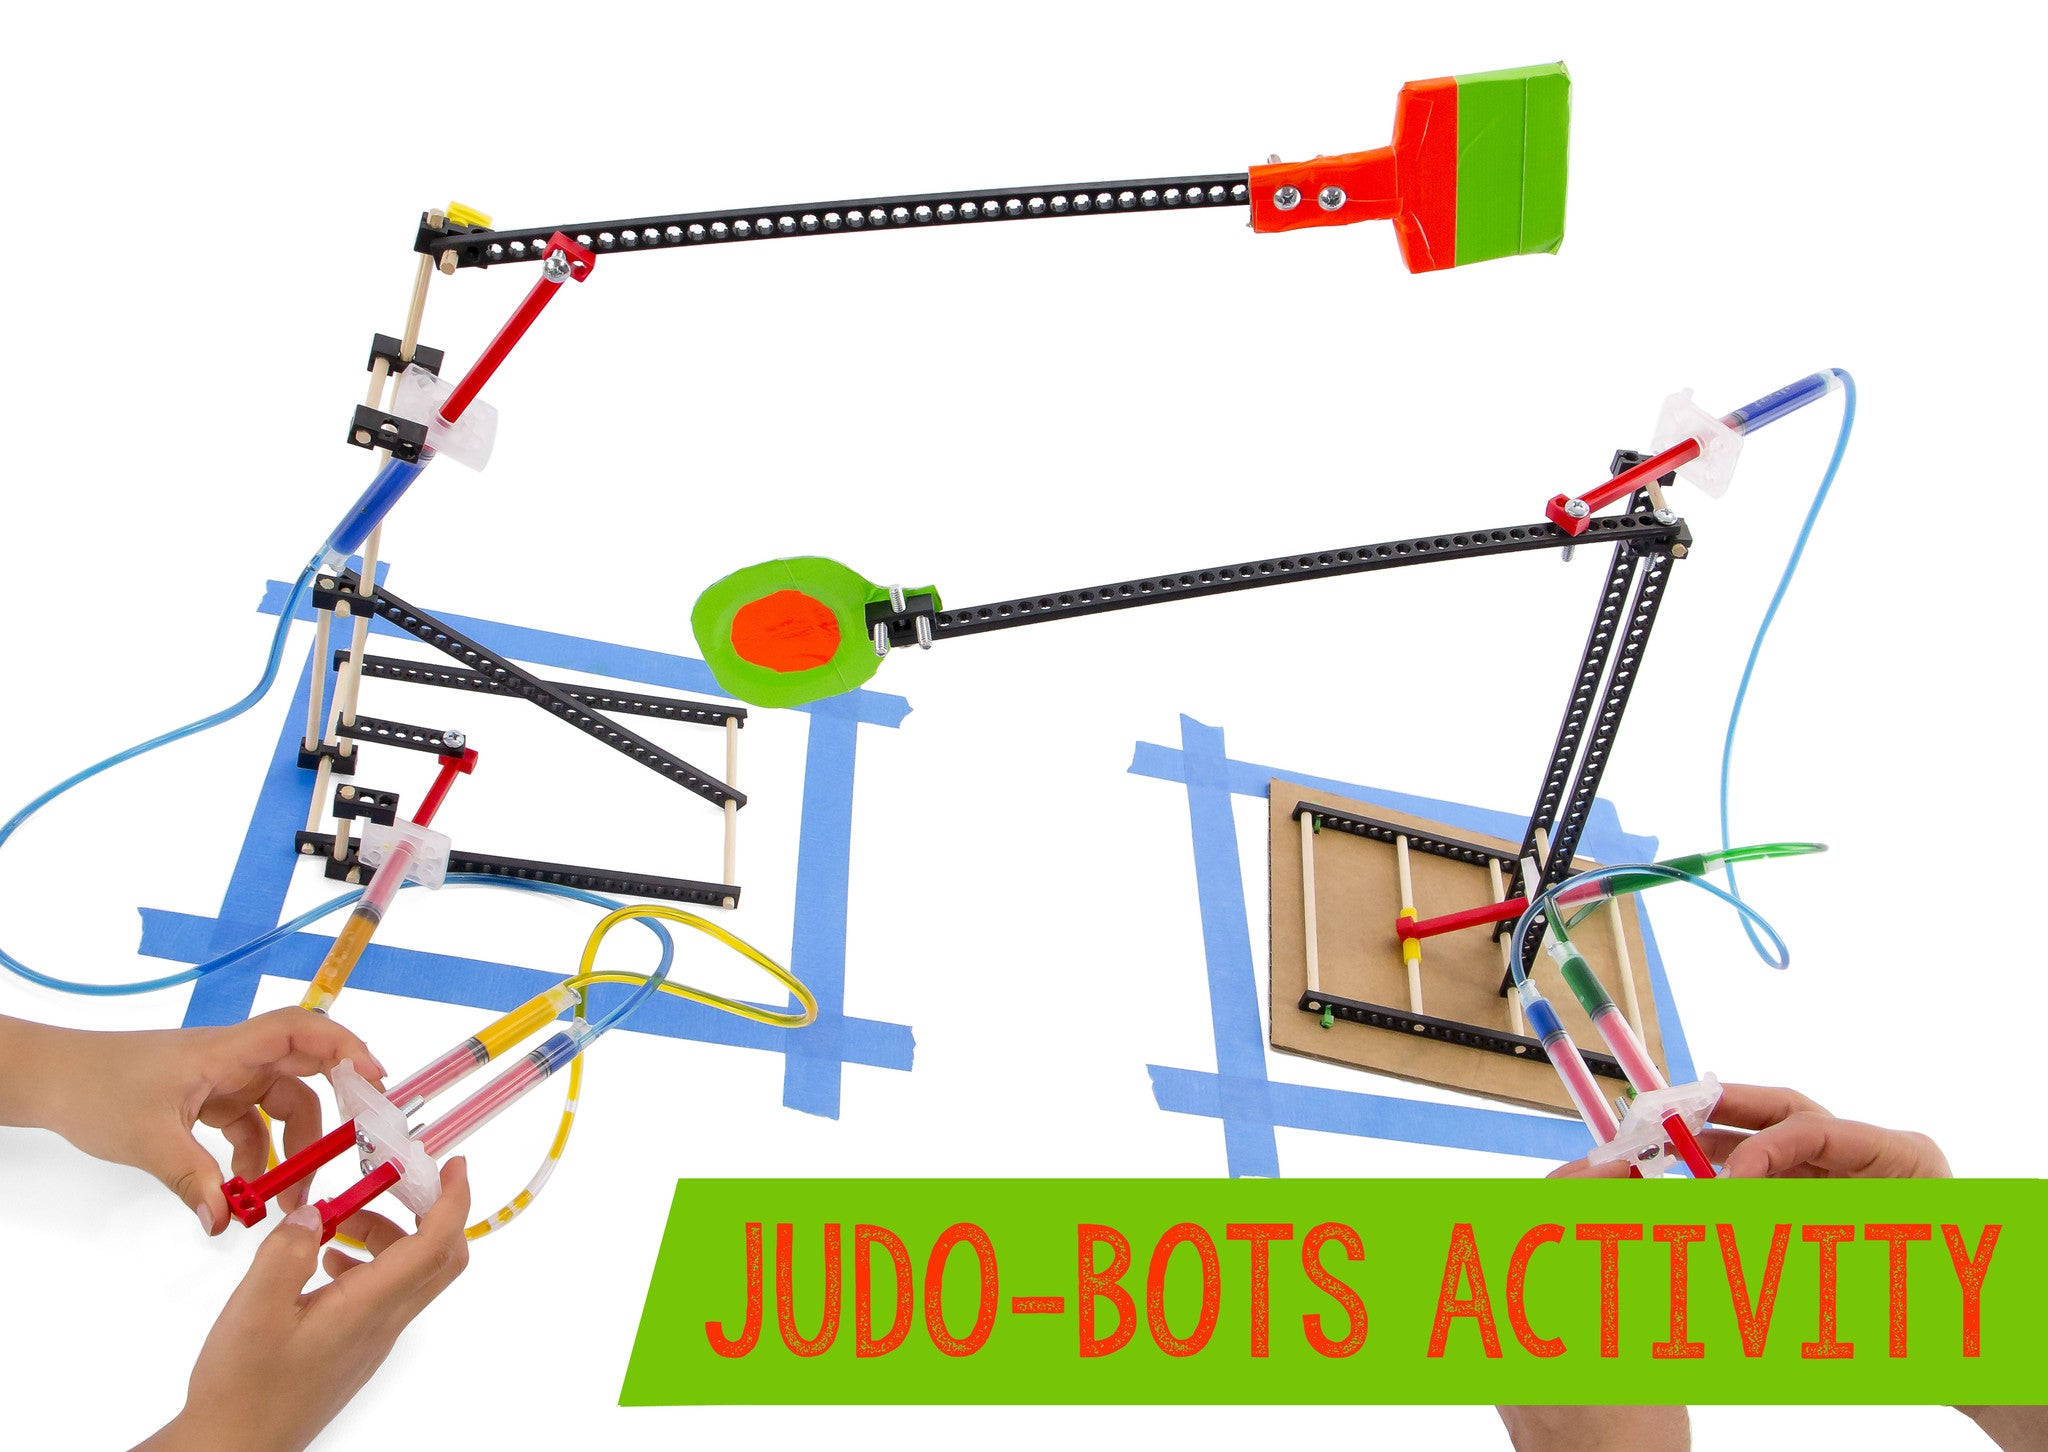 Judo-Bot Activity Documents